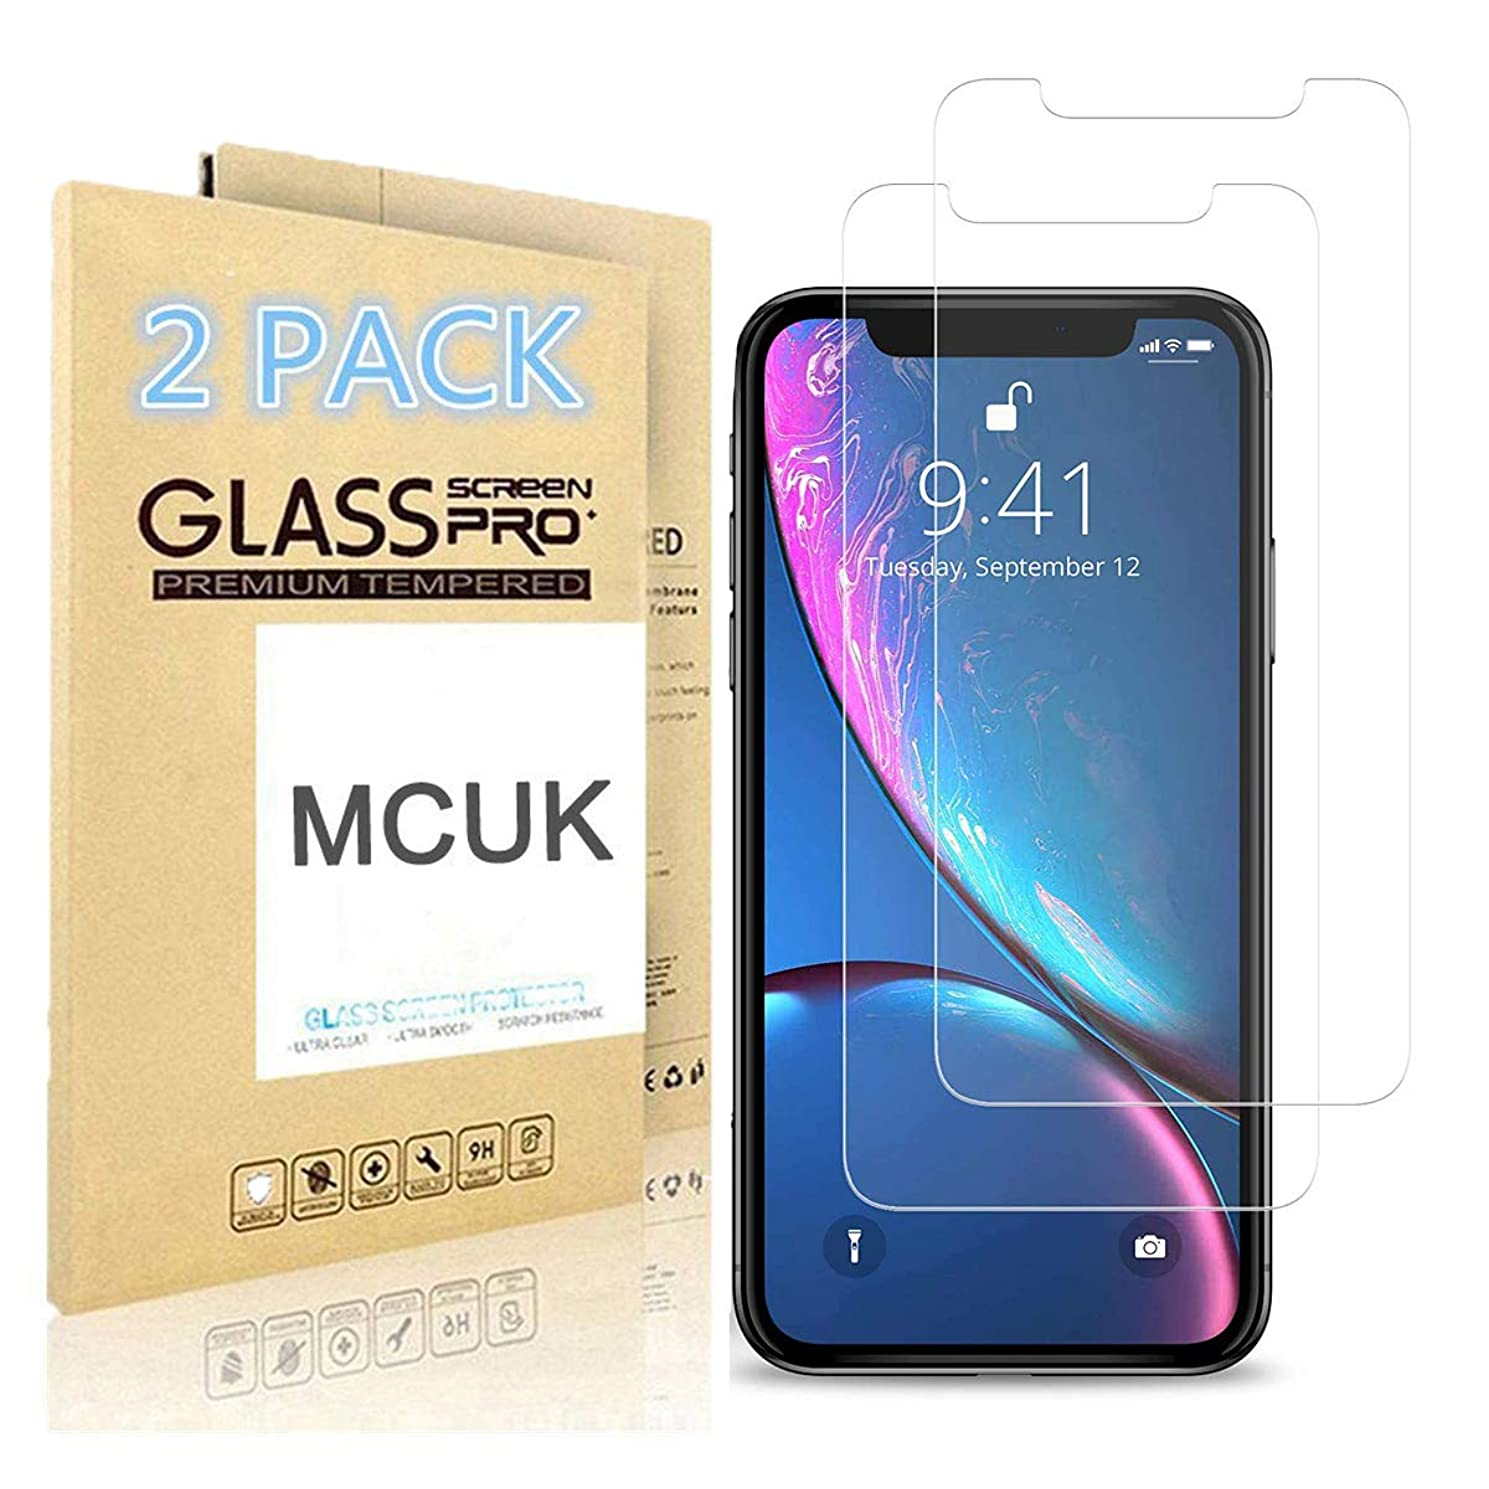 MCUK Screen Protector Compatible with iPhone XR, Double Defence Technology Tempered Glass [2.5D Edge] Screen Protector [Case Friendly] for Apple iPhone XR 6.1 inch